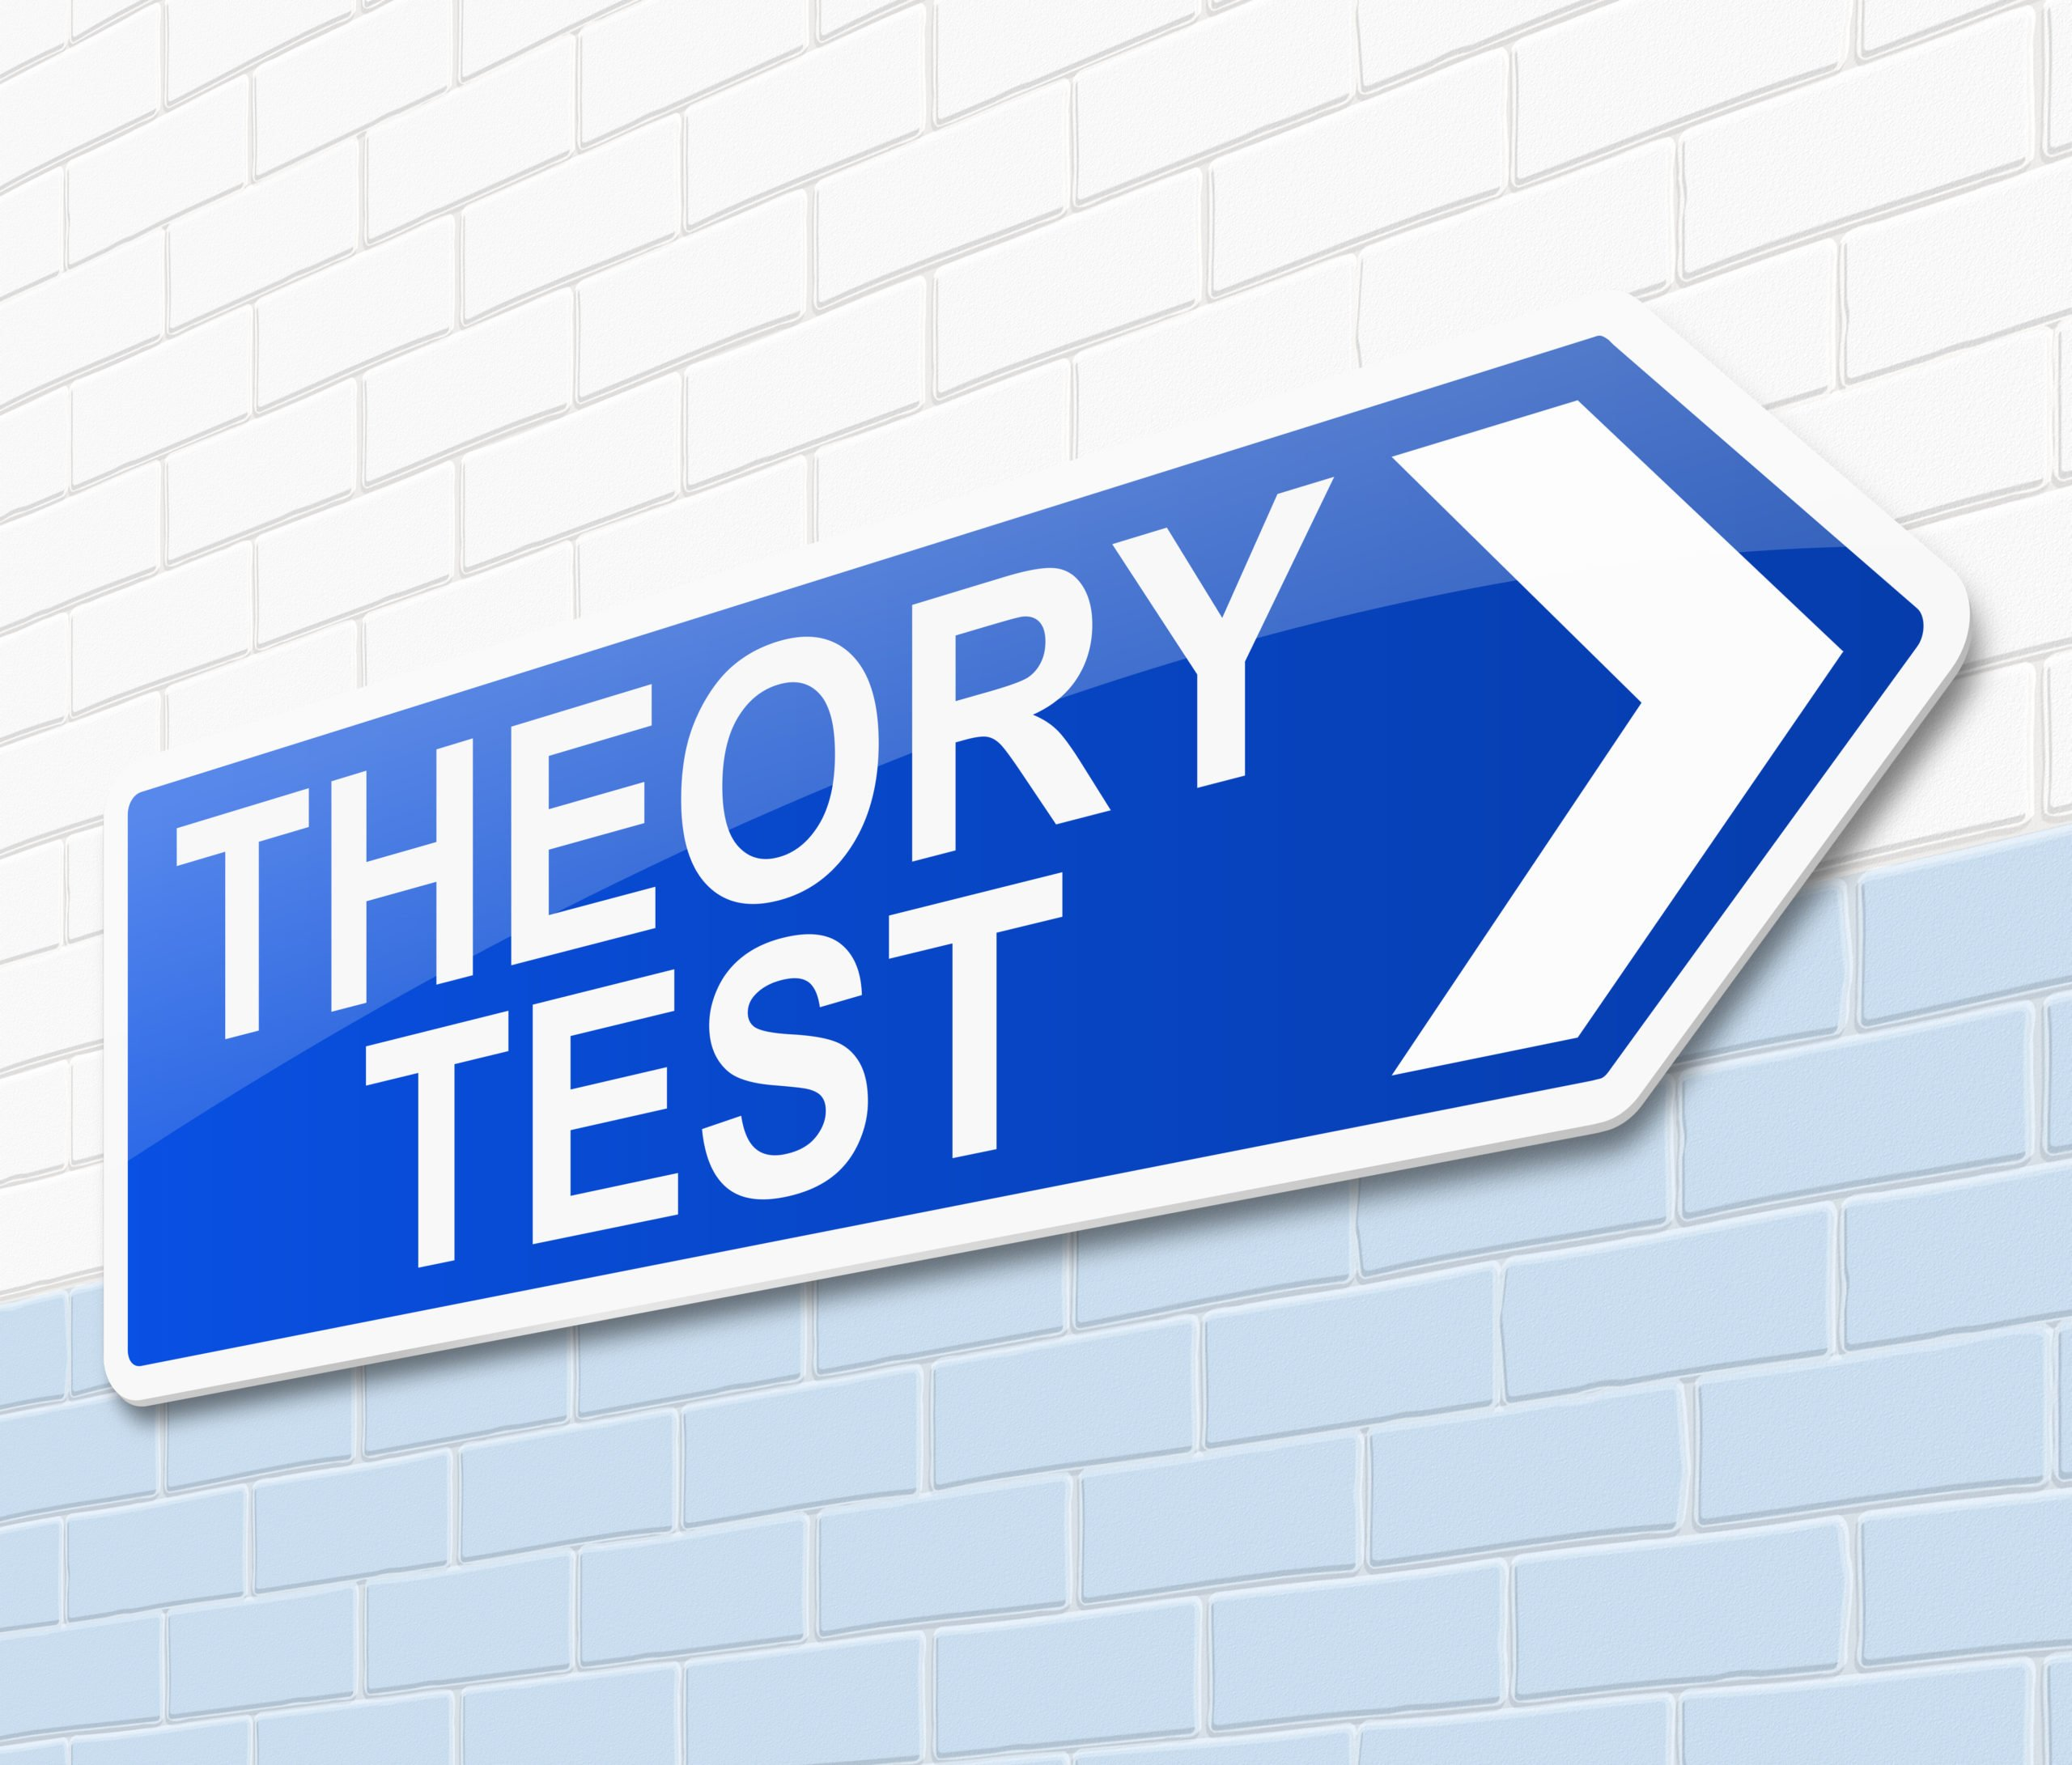 Picture showing a sign for theory test